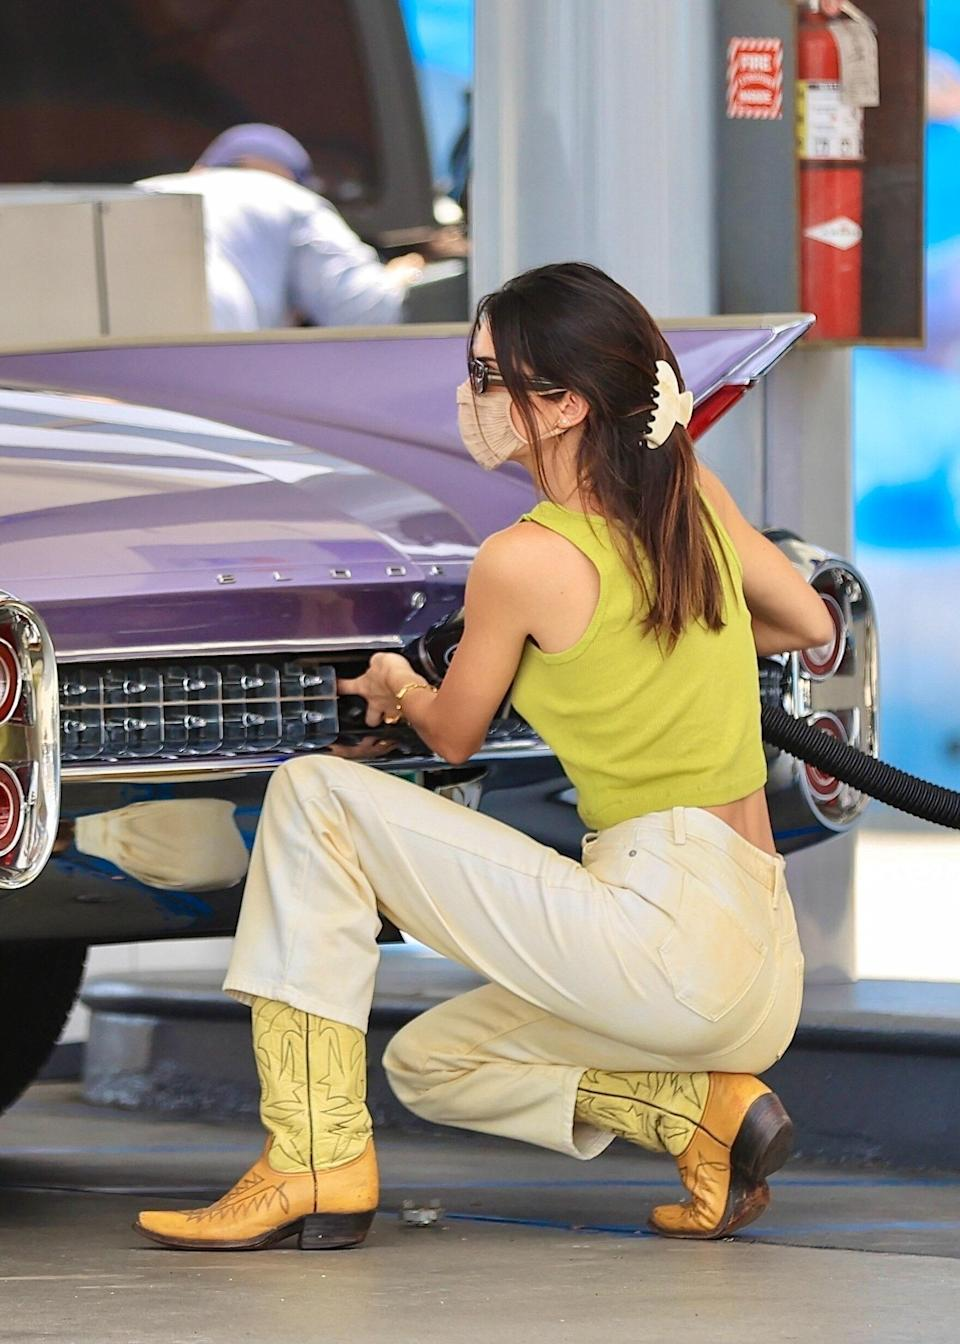 """<h1 class=""""title""""><em>EXCLUSIVE</em> Kendall Jenner stuns in a green crop top as she makes a pit stop at the gas pump</h1><cite class=""""credit"""">Photo: Courtesy of RACHPOOT / BACKGRID</cite>"""